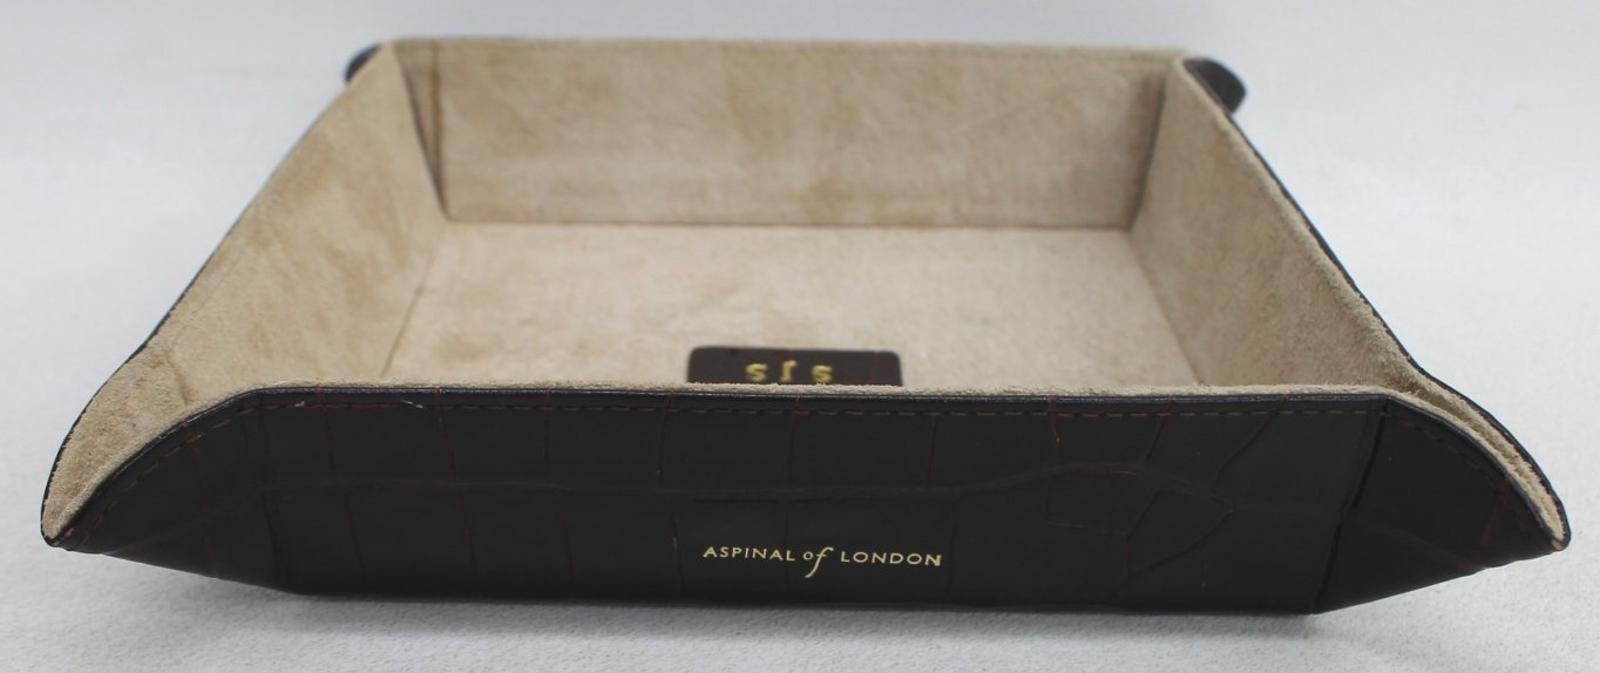 ASPINAL-OF-LONDON-Mahogany-Croc-Print-Leather-Medium-Tidy-Tray-Embossed-SJS-NEW